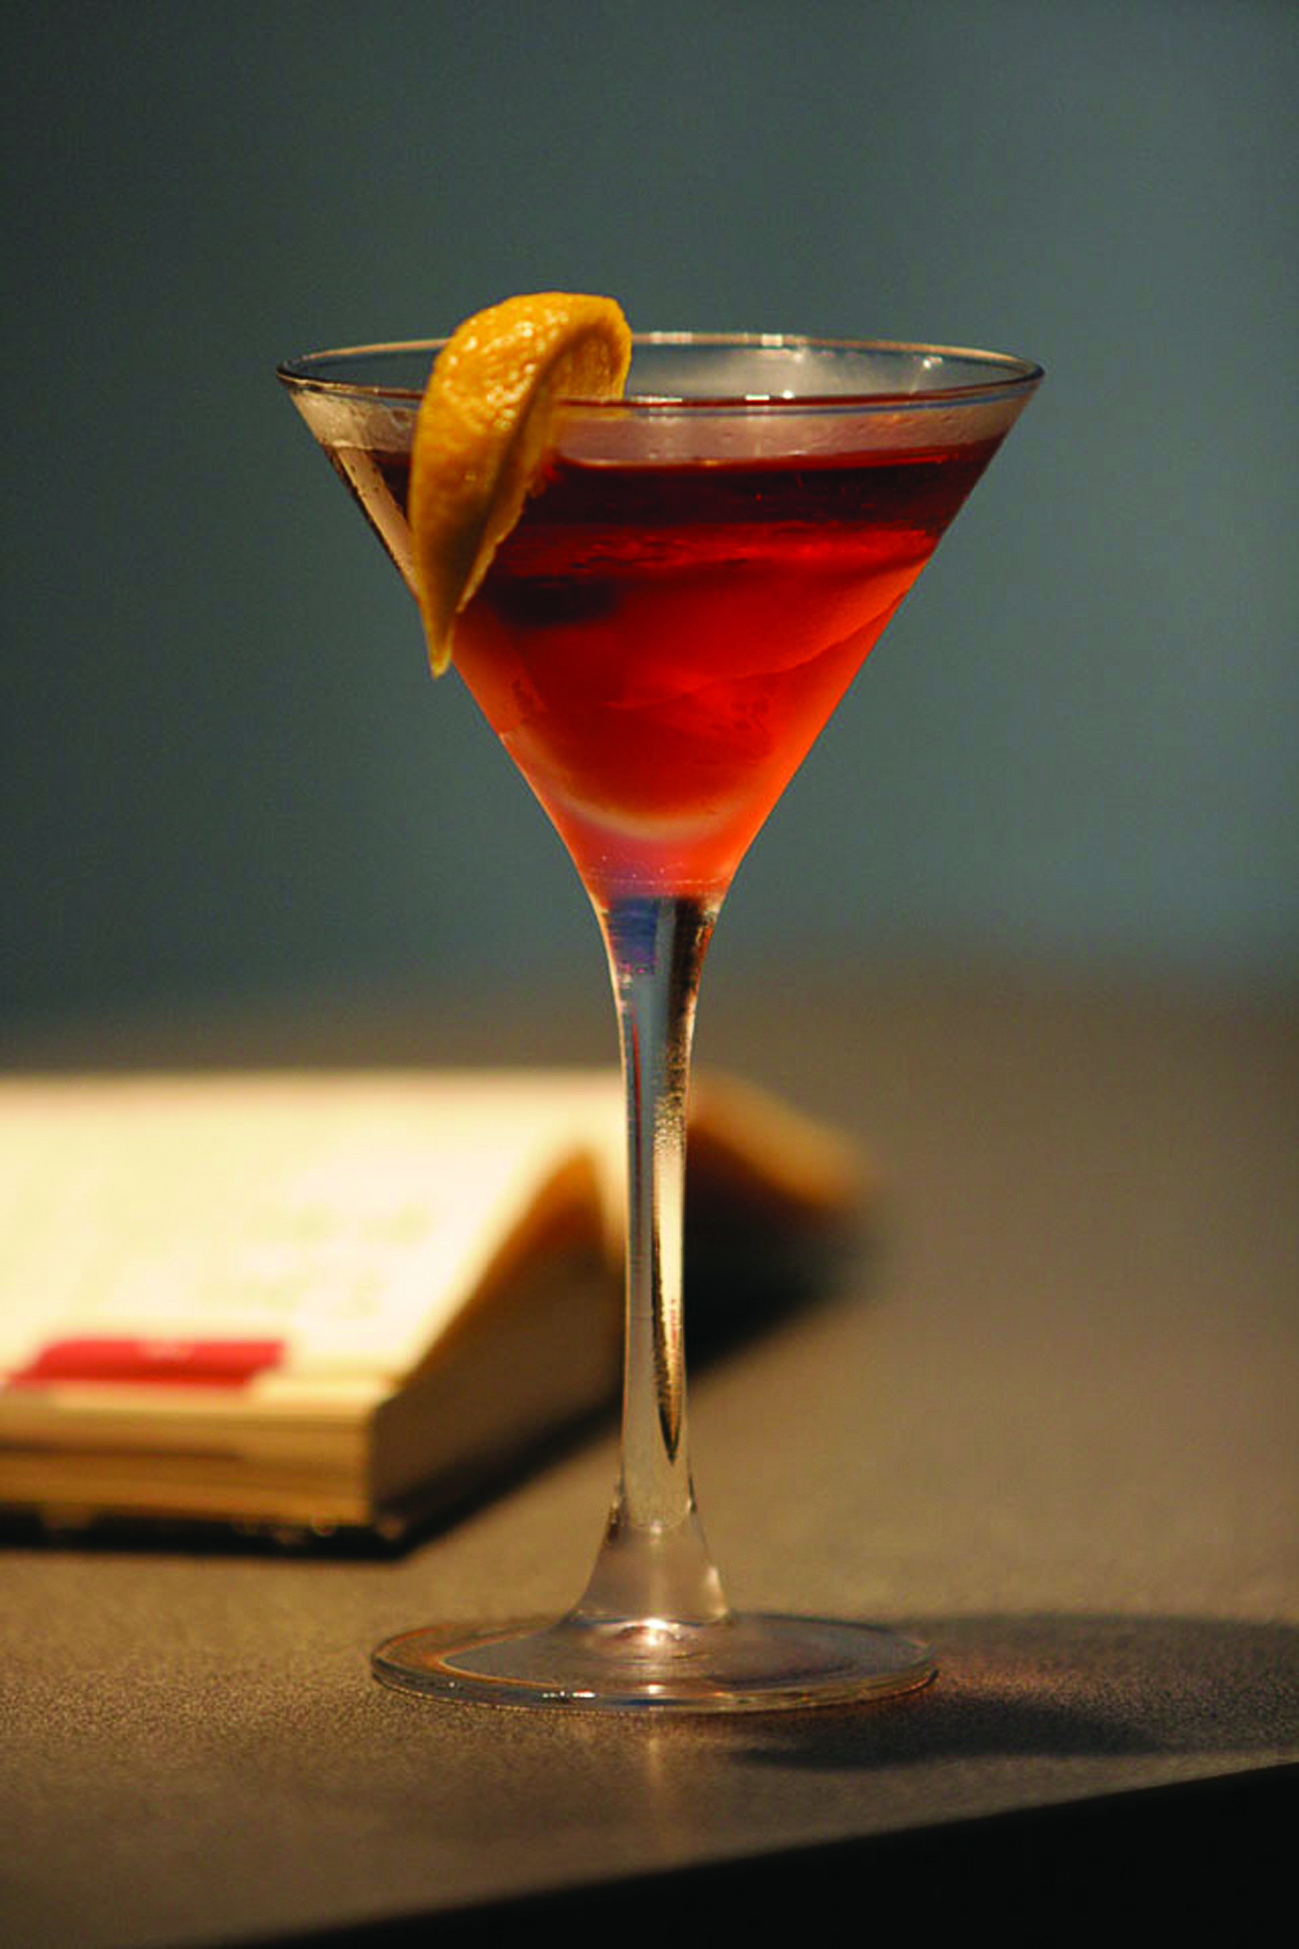 How many calories in a Sweet Vermouth? (170 kcal)